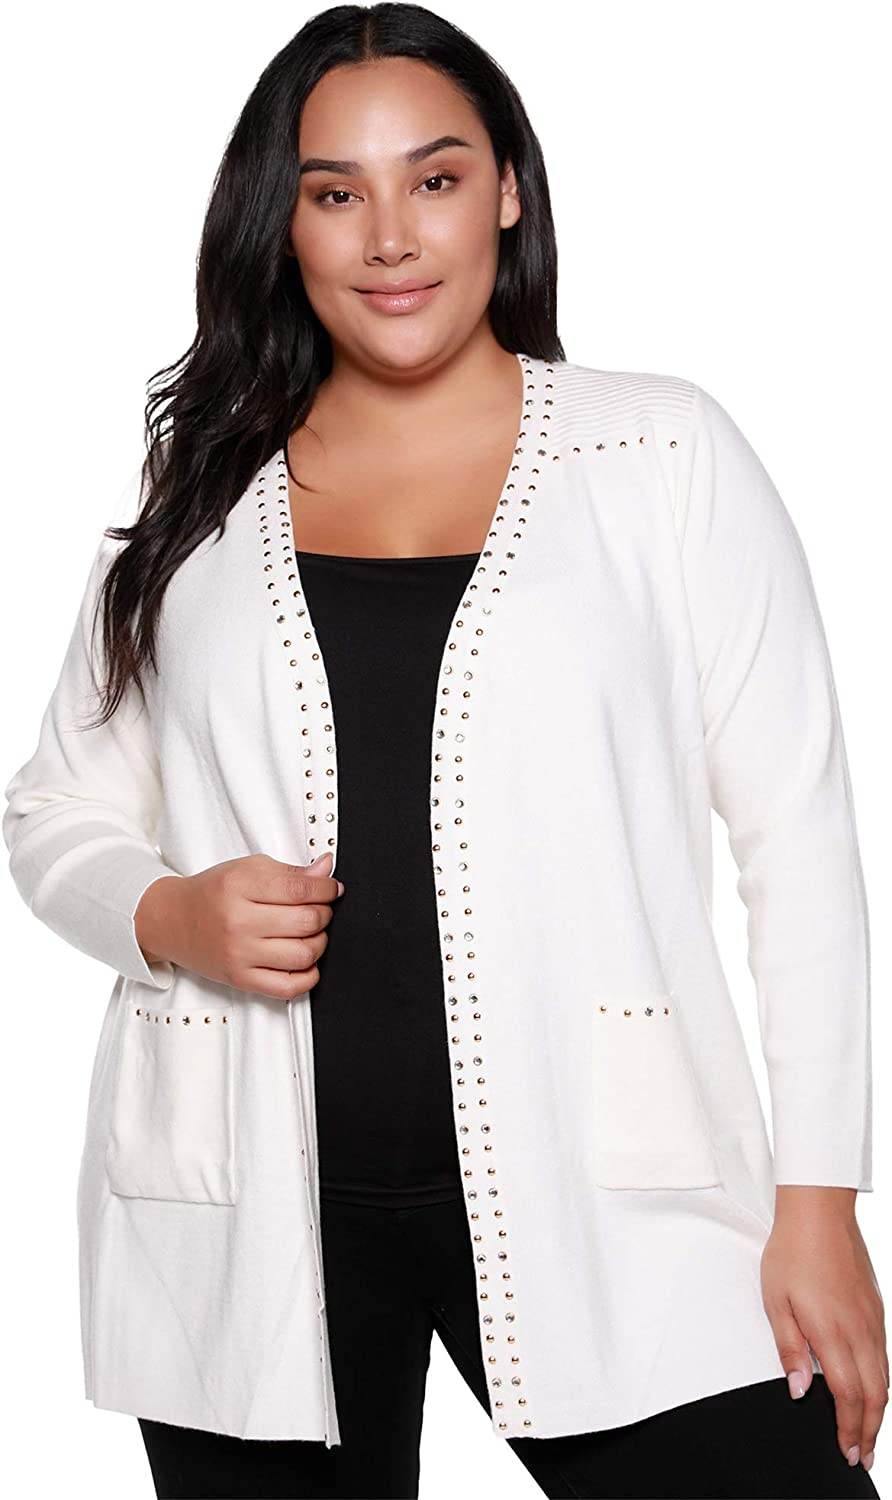 Cardigan Plus Size Long Sleeve Open Front Light Cardigan with Trim